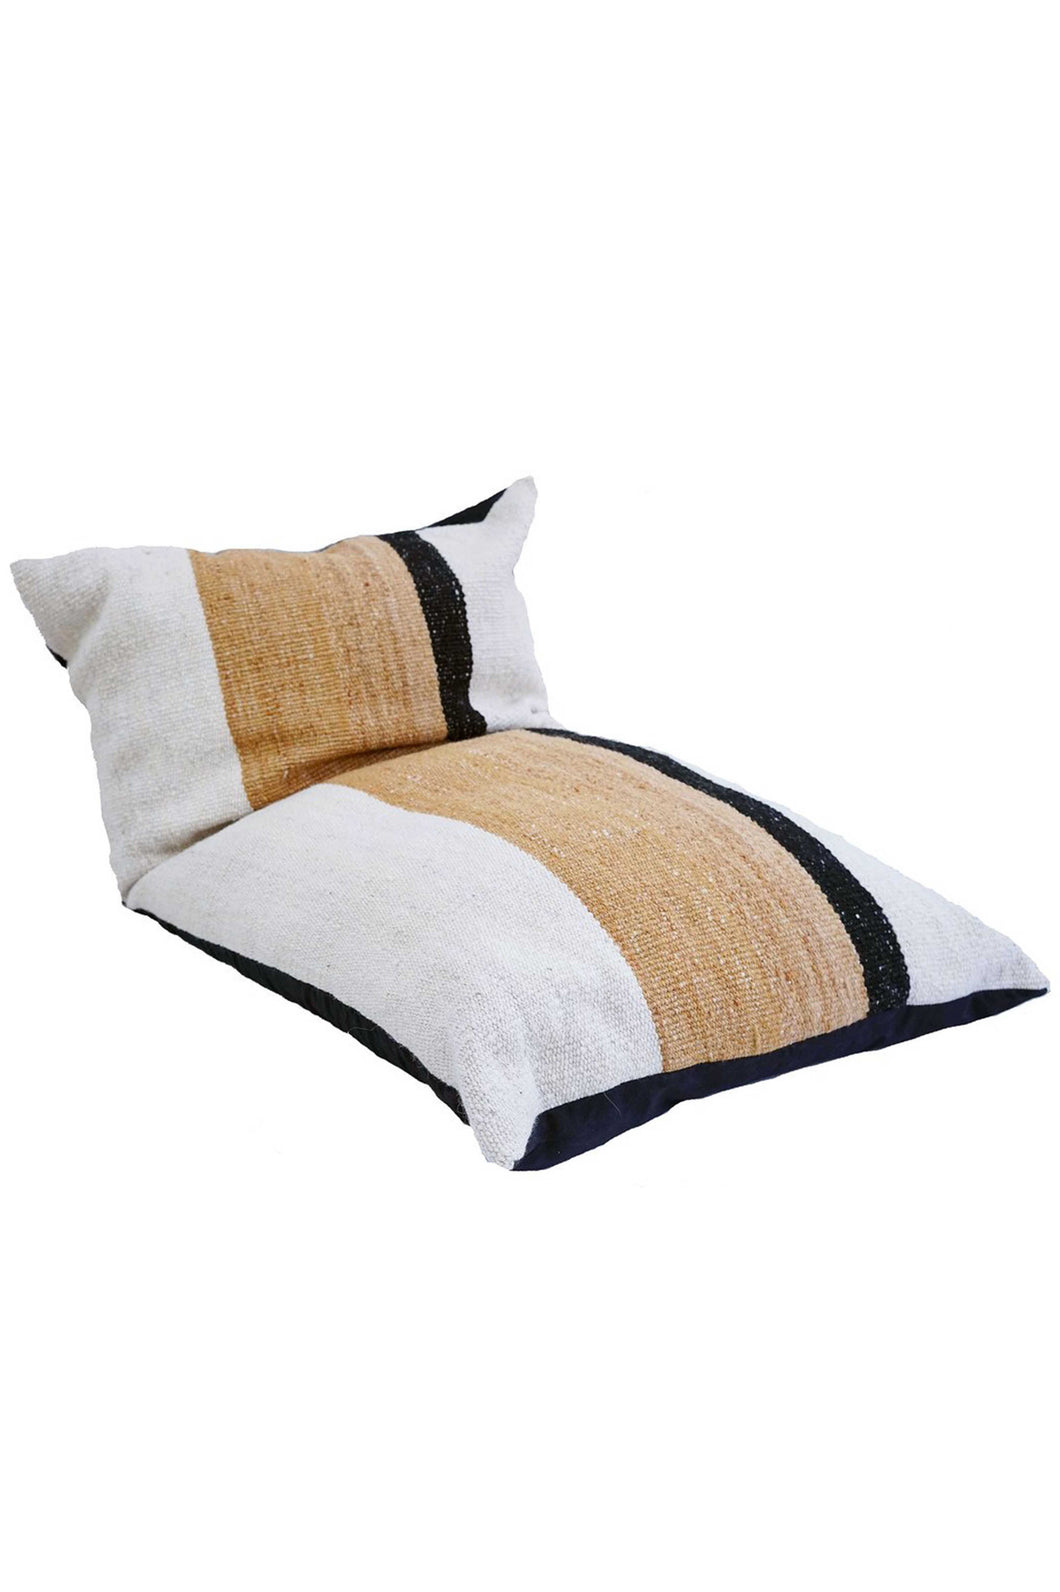 Sendero Handwoven Colorblock Floor Cushion